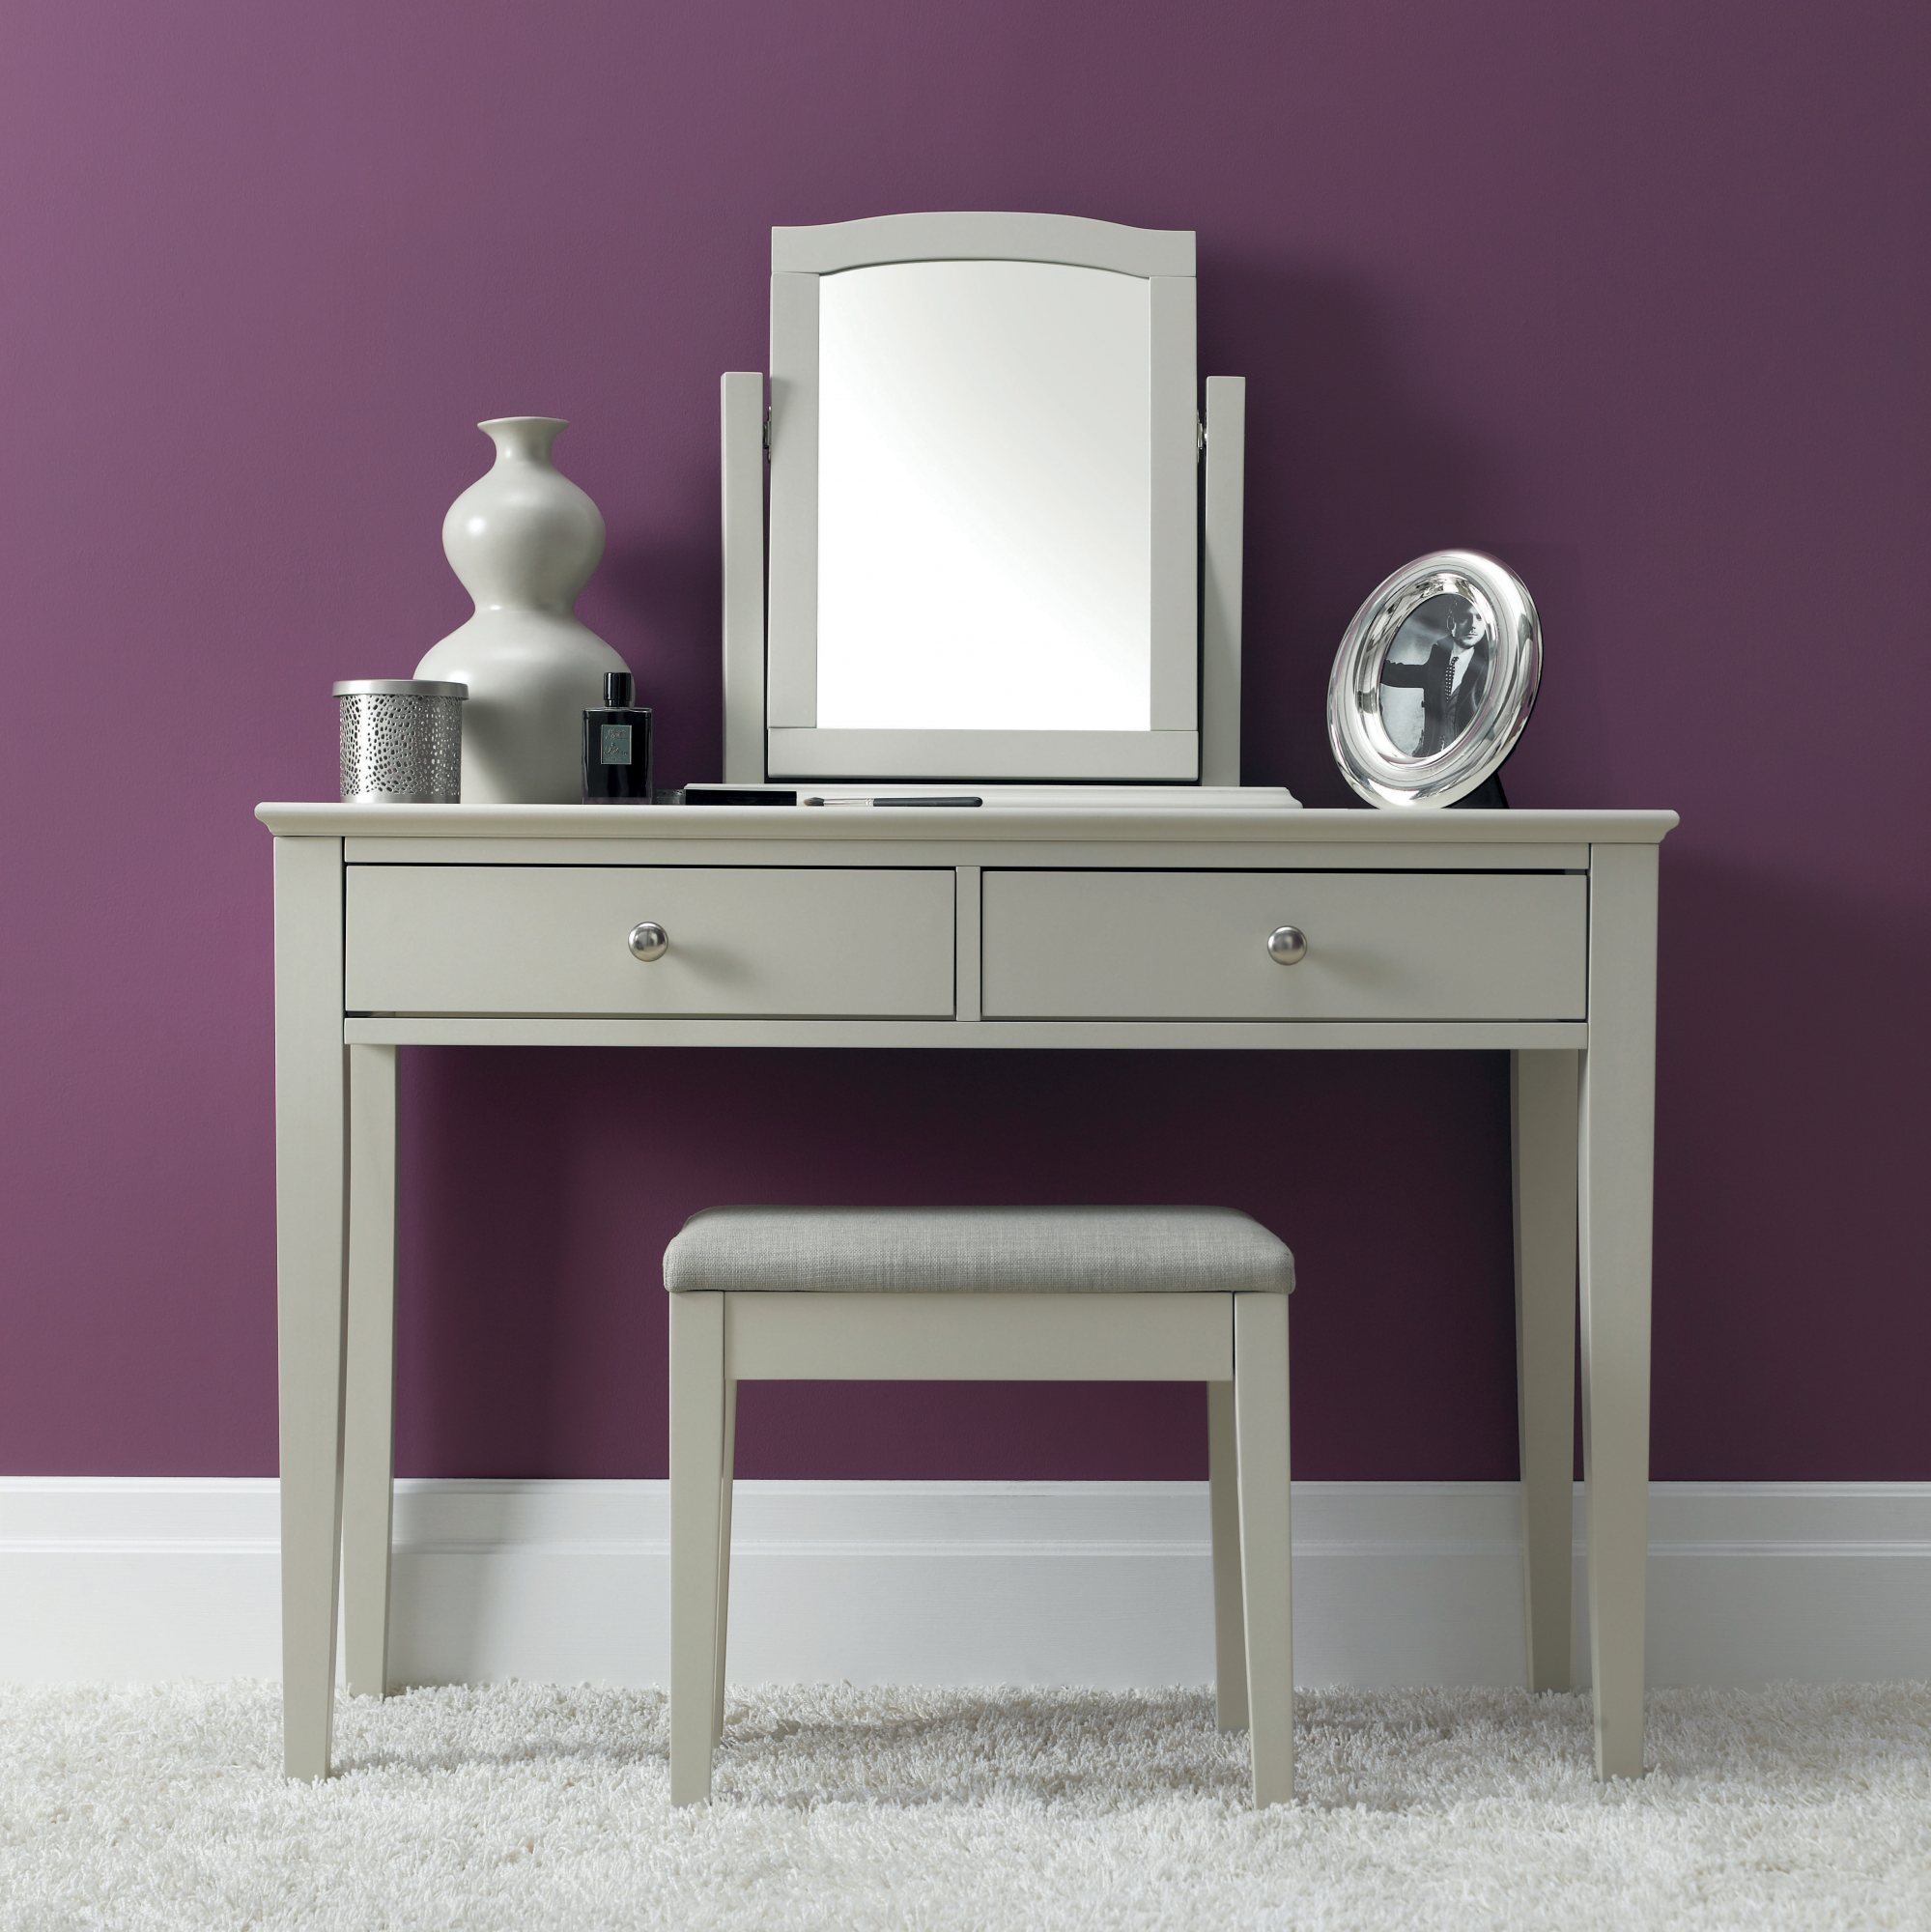 ASHLEY GREY BEDROOM MIRROR - L52cm x D18cm x H53cm